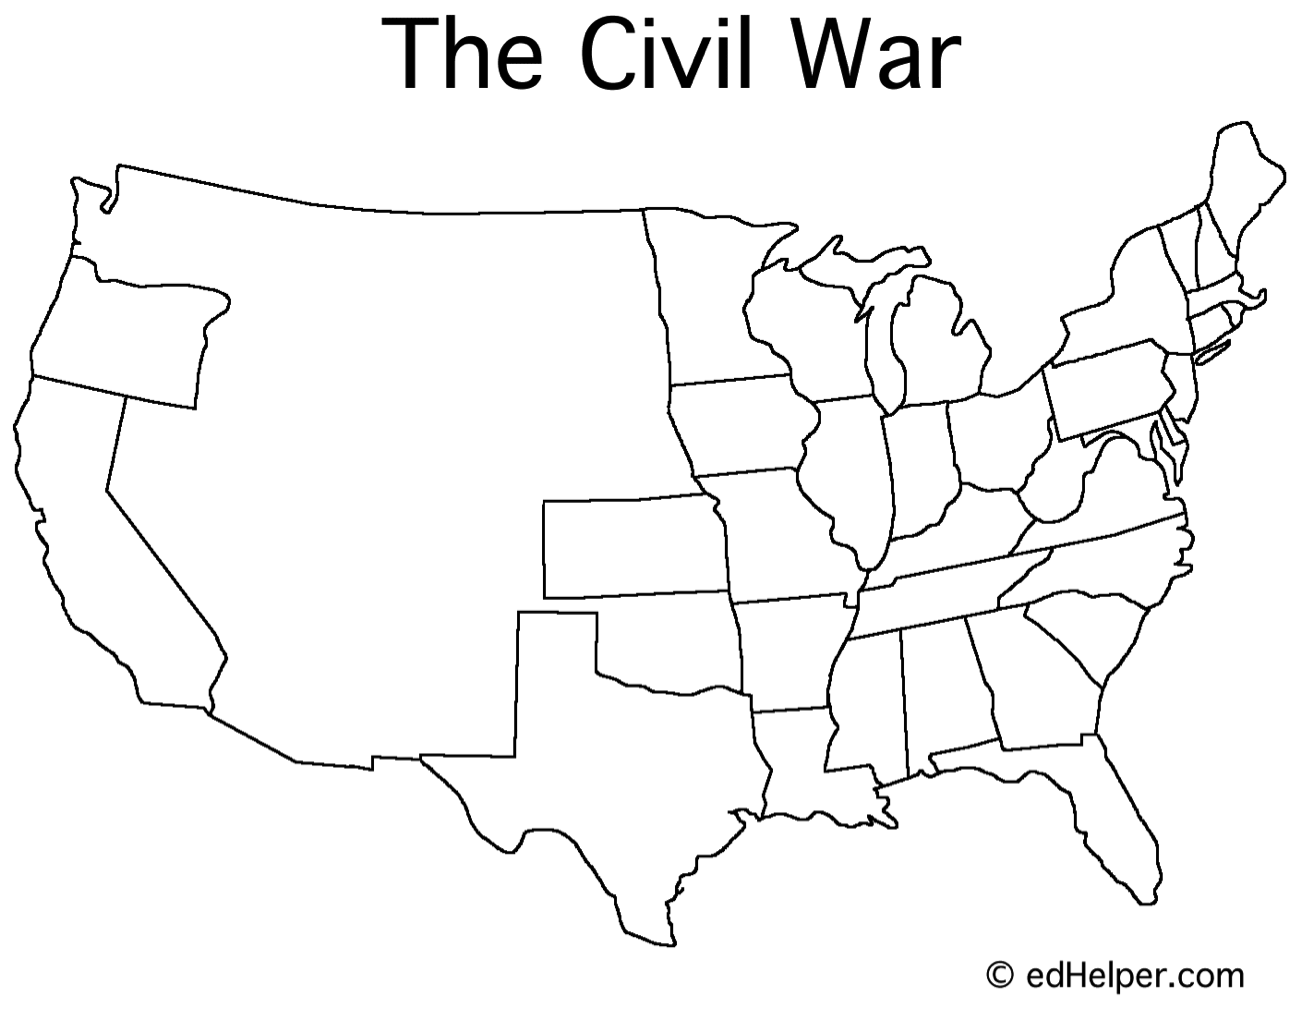 Worksheets Civil War Timeline Worksheet civil war timeline google search social studies pinterest search